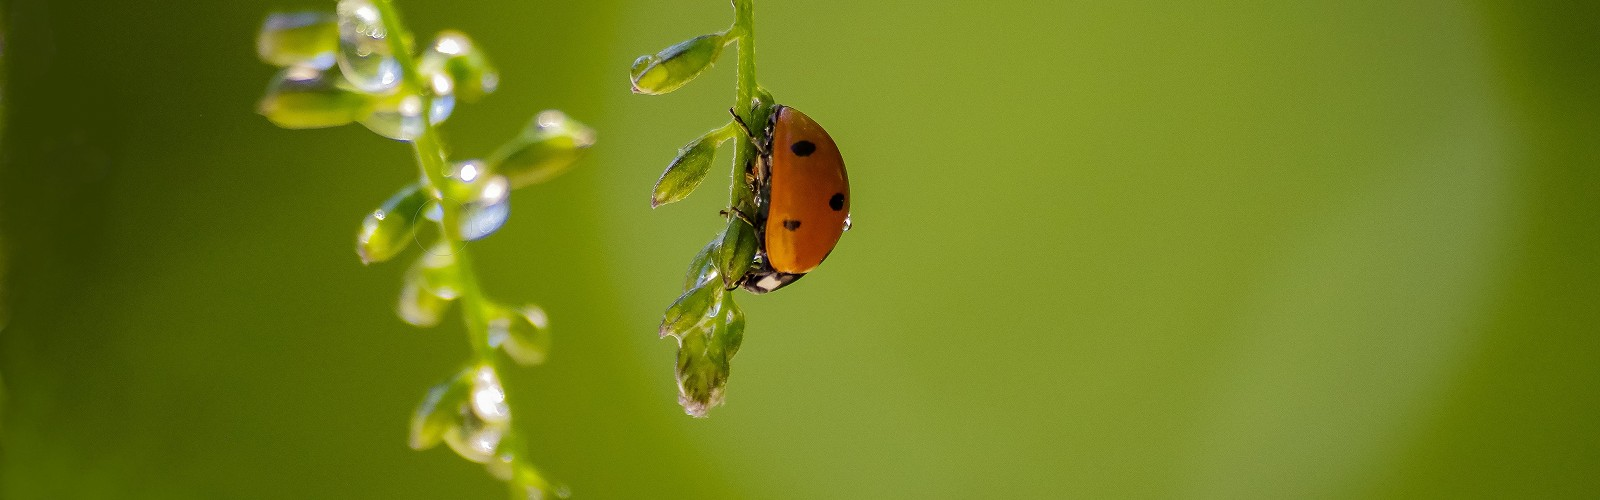 ladybird (image: Simon Smith / Unsplash)